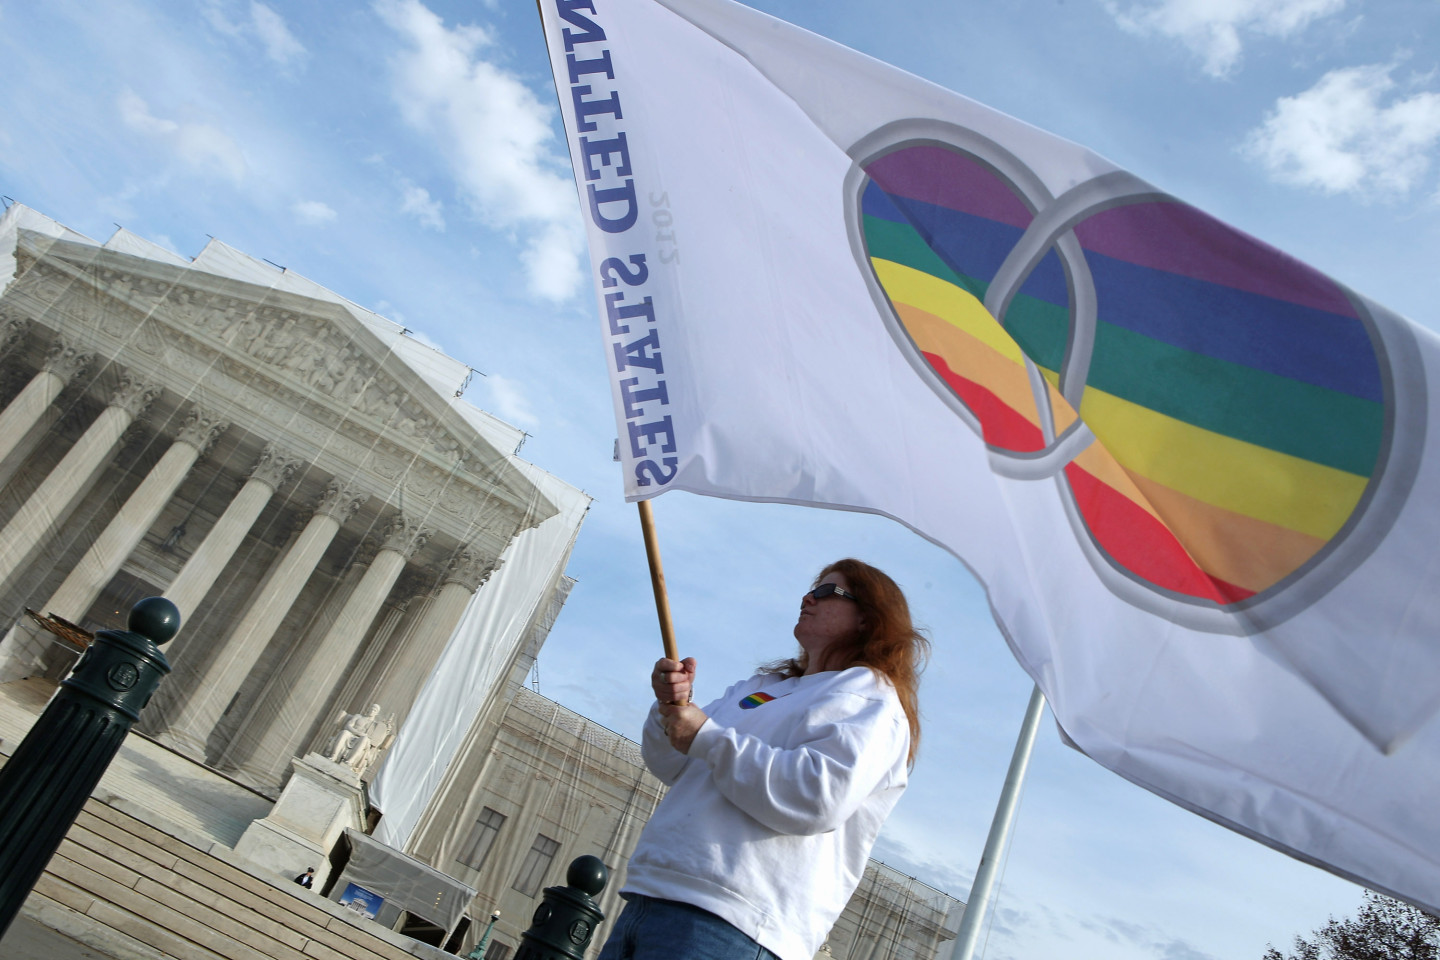 A supporter of same-sex marriage outside the U.S. Supreme Court in 2012. (Chip Somodevilla/Getty Images)